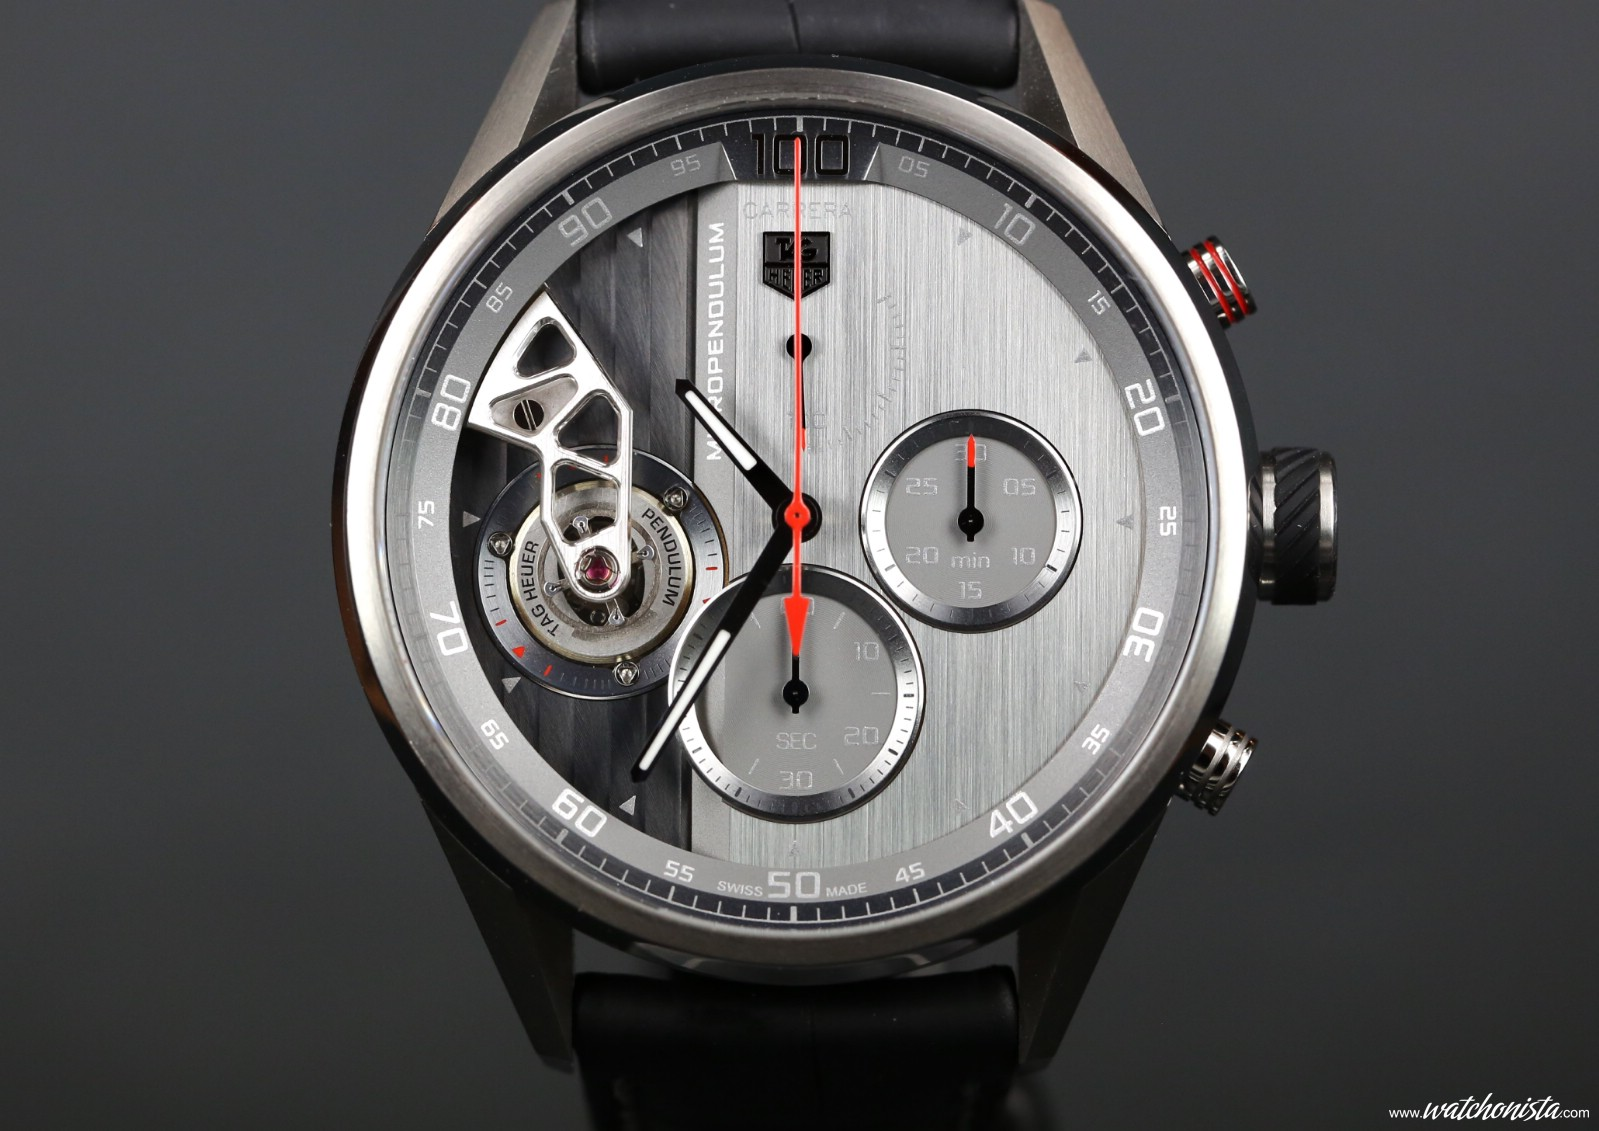 c8123ff4da8 TAG Heuer Carrera, 50 years of research and innovation - Part 2 ...